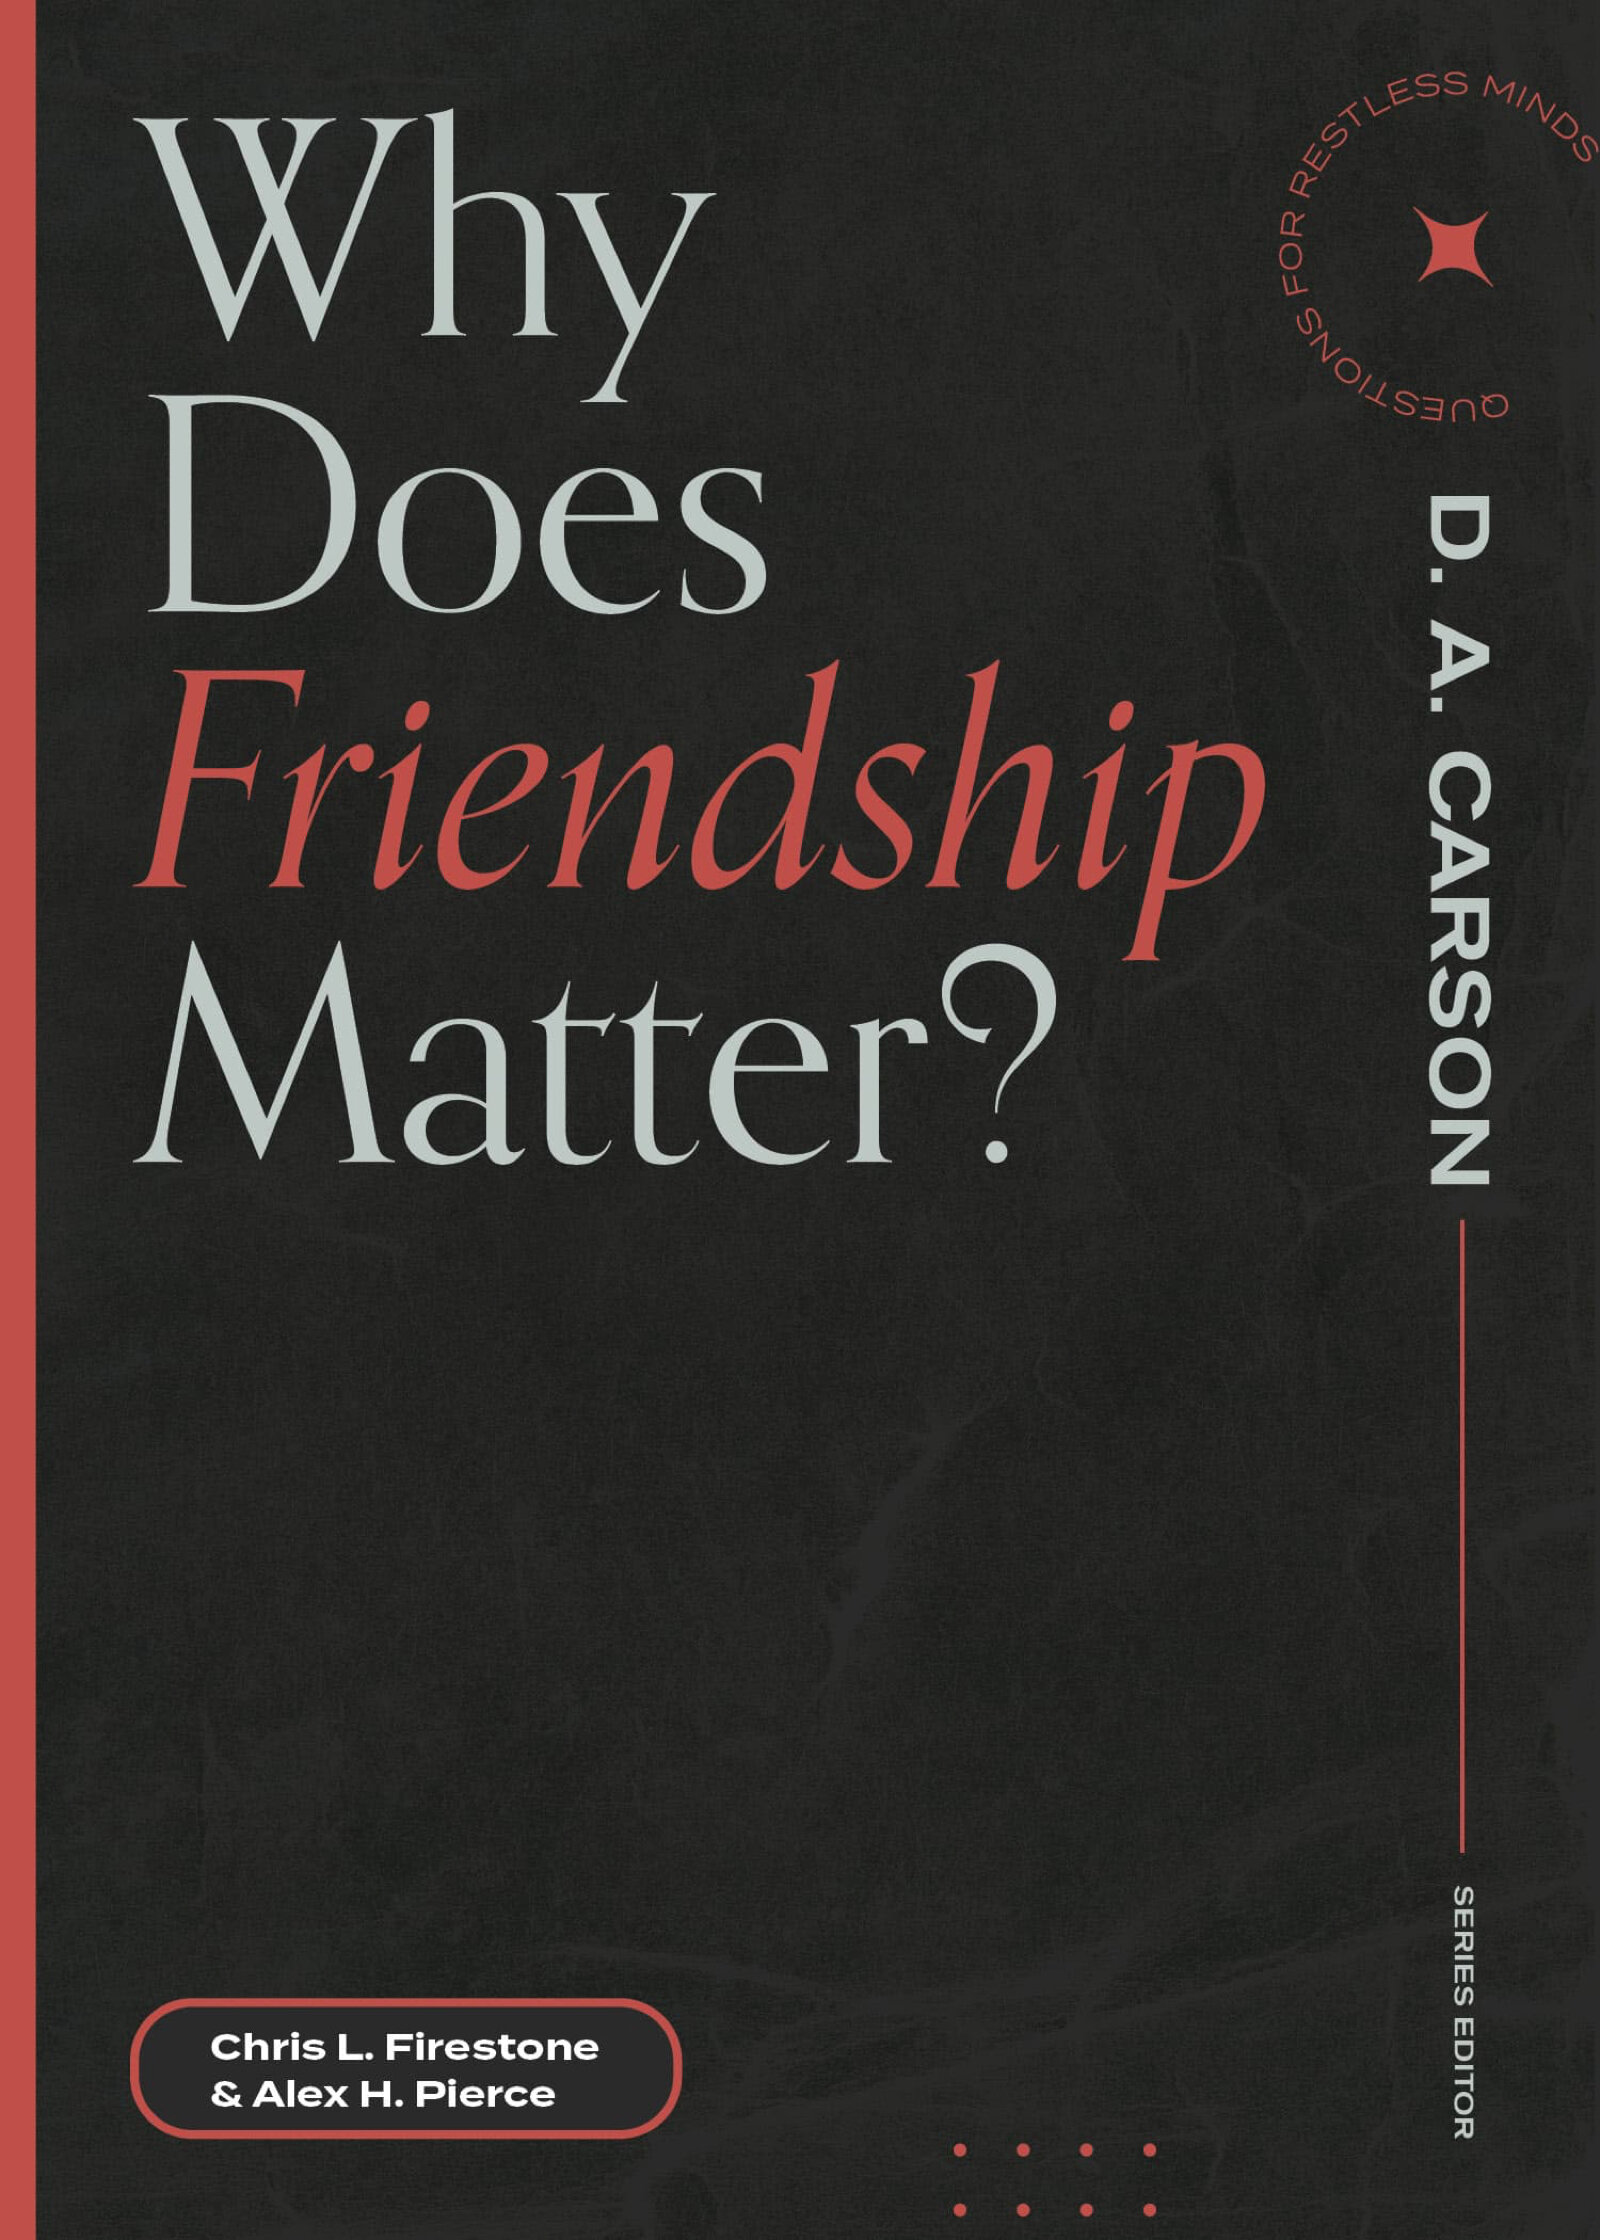 Why Does Friendship Matter?